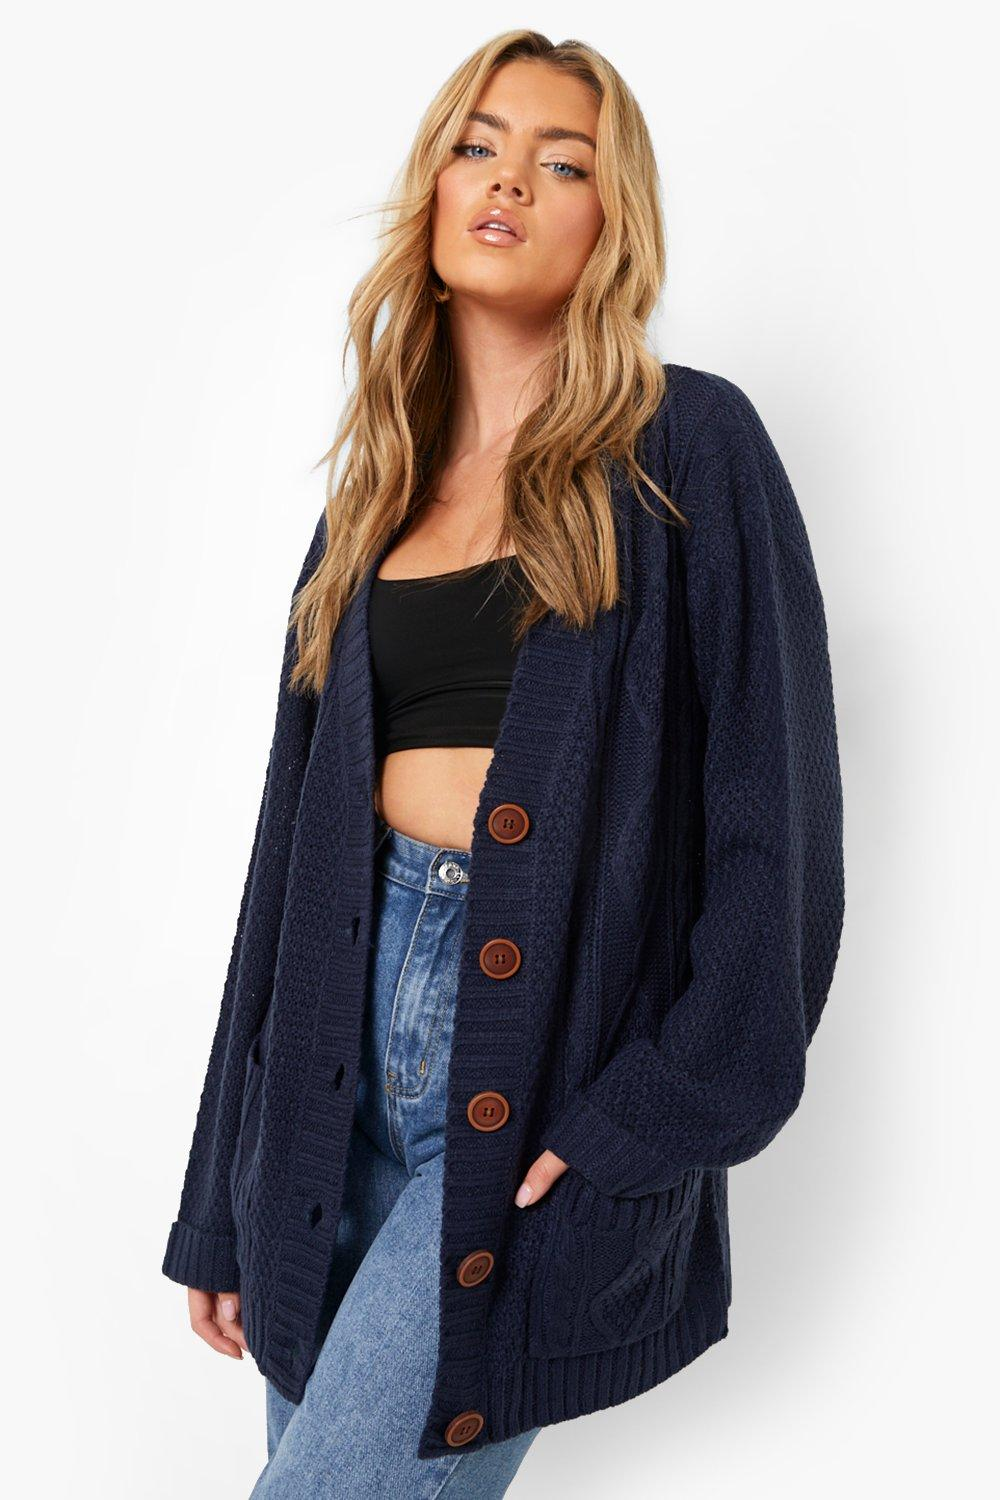 Boyfriend sweaters are featured in loose-fitting styles, but you can enhance your figure with a skinny belt or add a wider belt that defines the waistline. Shop the collection of boyfriend sweaters for women and girls at Macy's.